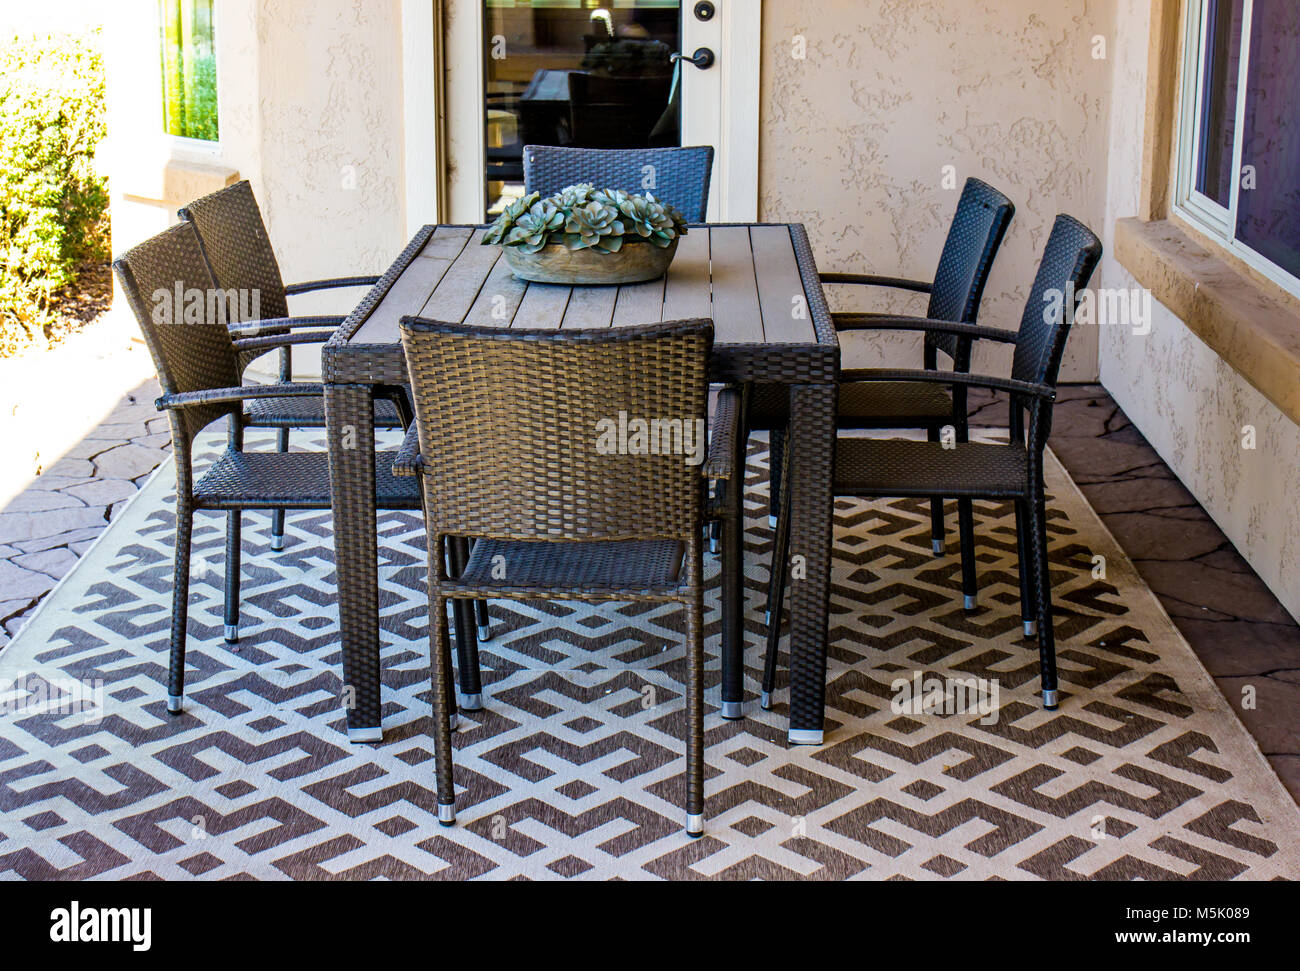 Outdoor Patio Table U0026 Chairs Under Shady Covering